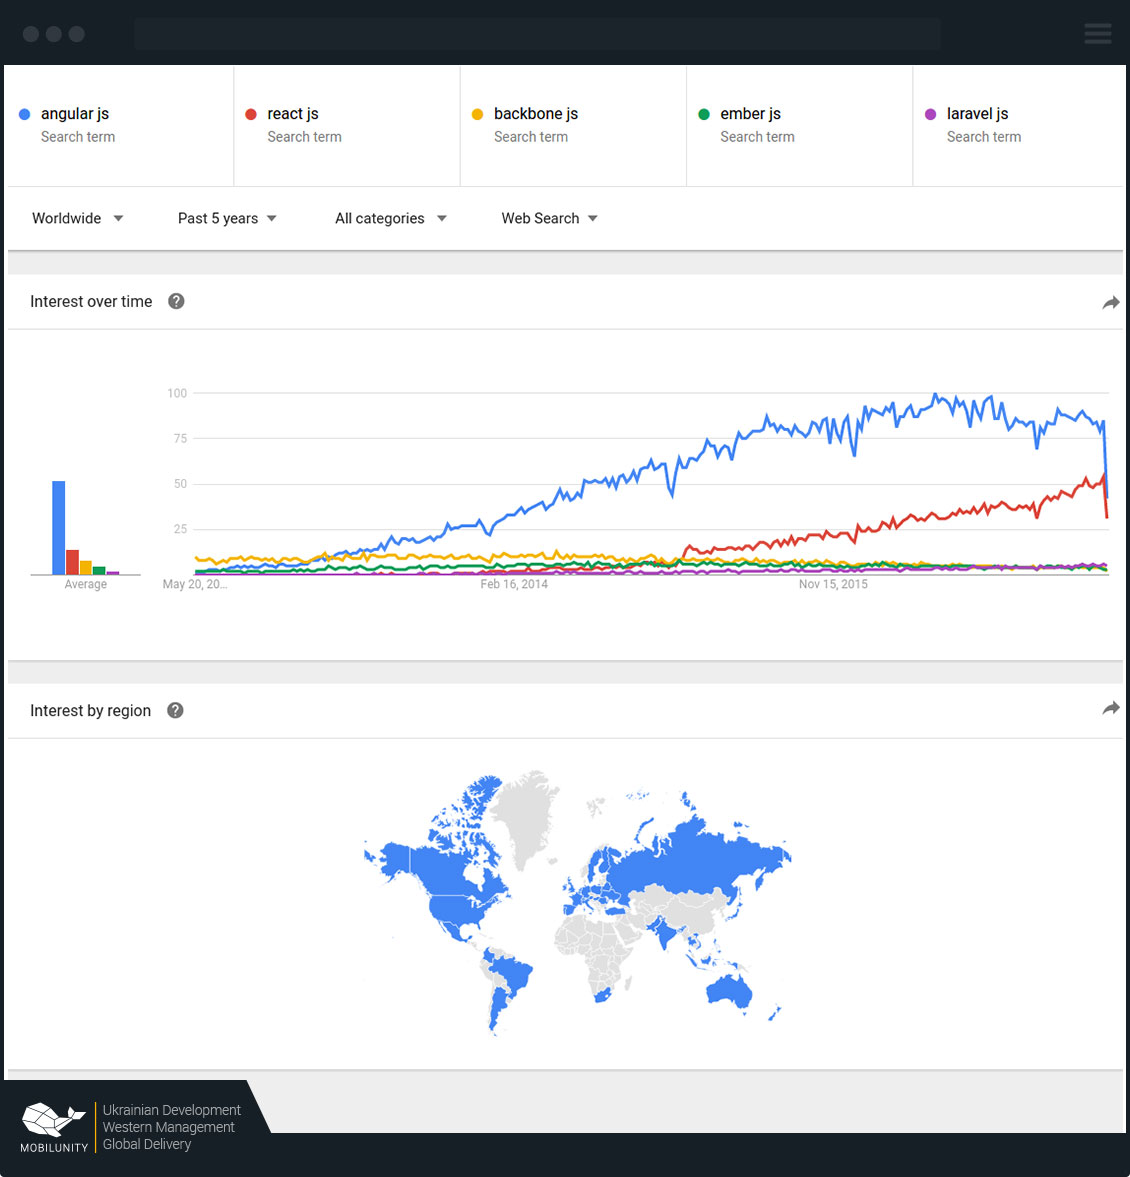 Google trends results on react developers usage and popularity